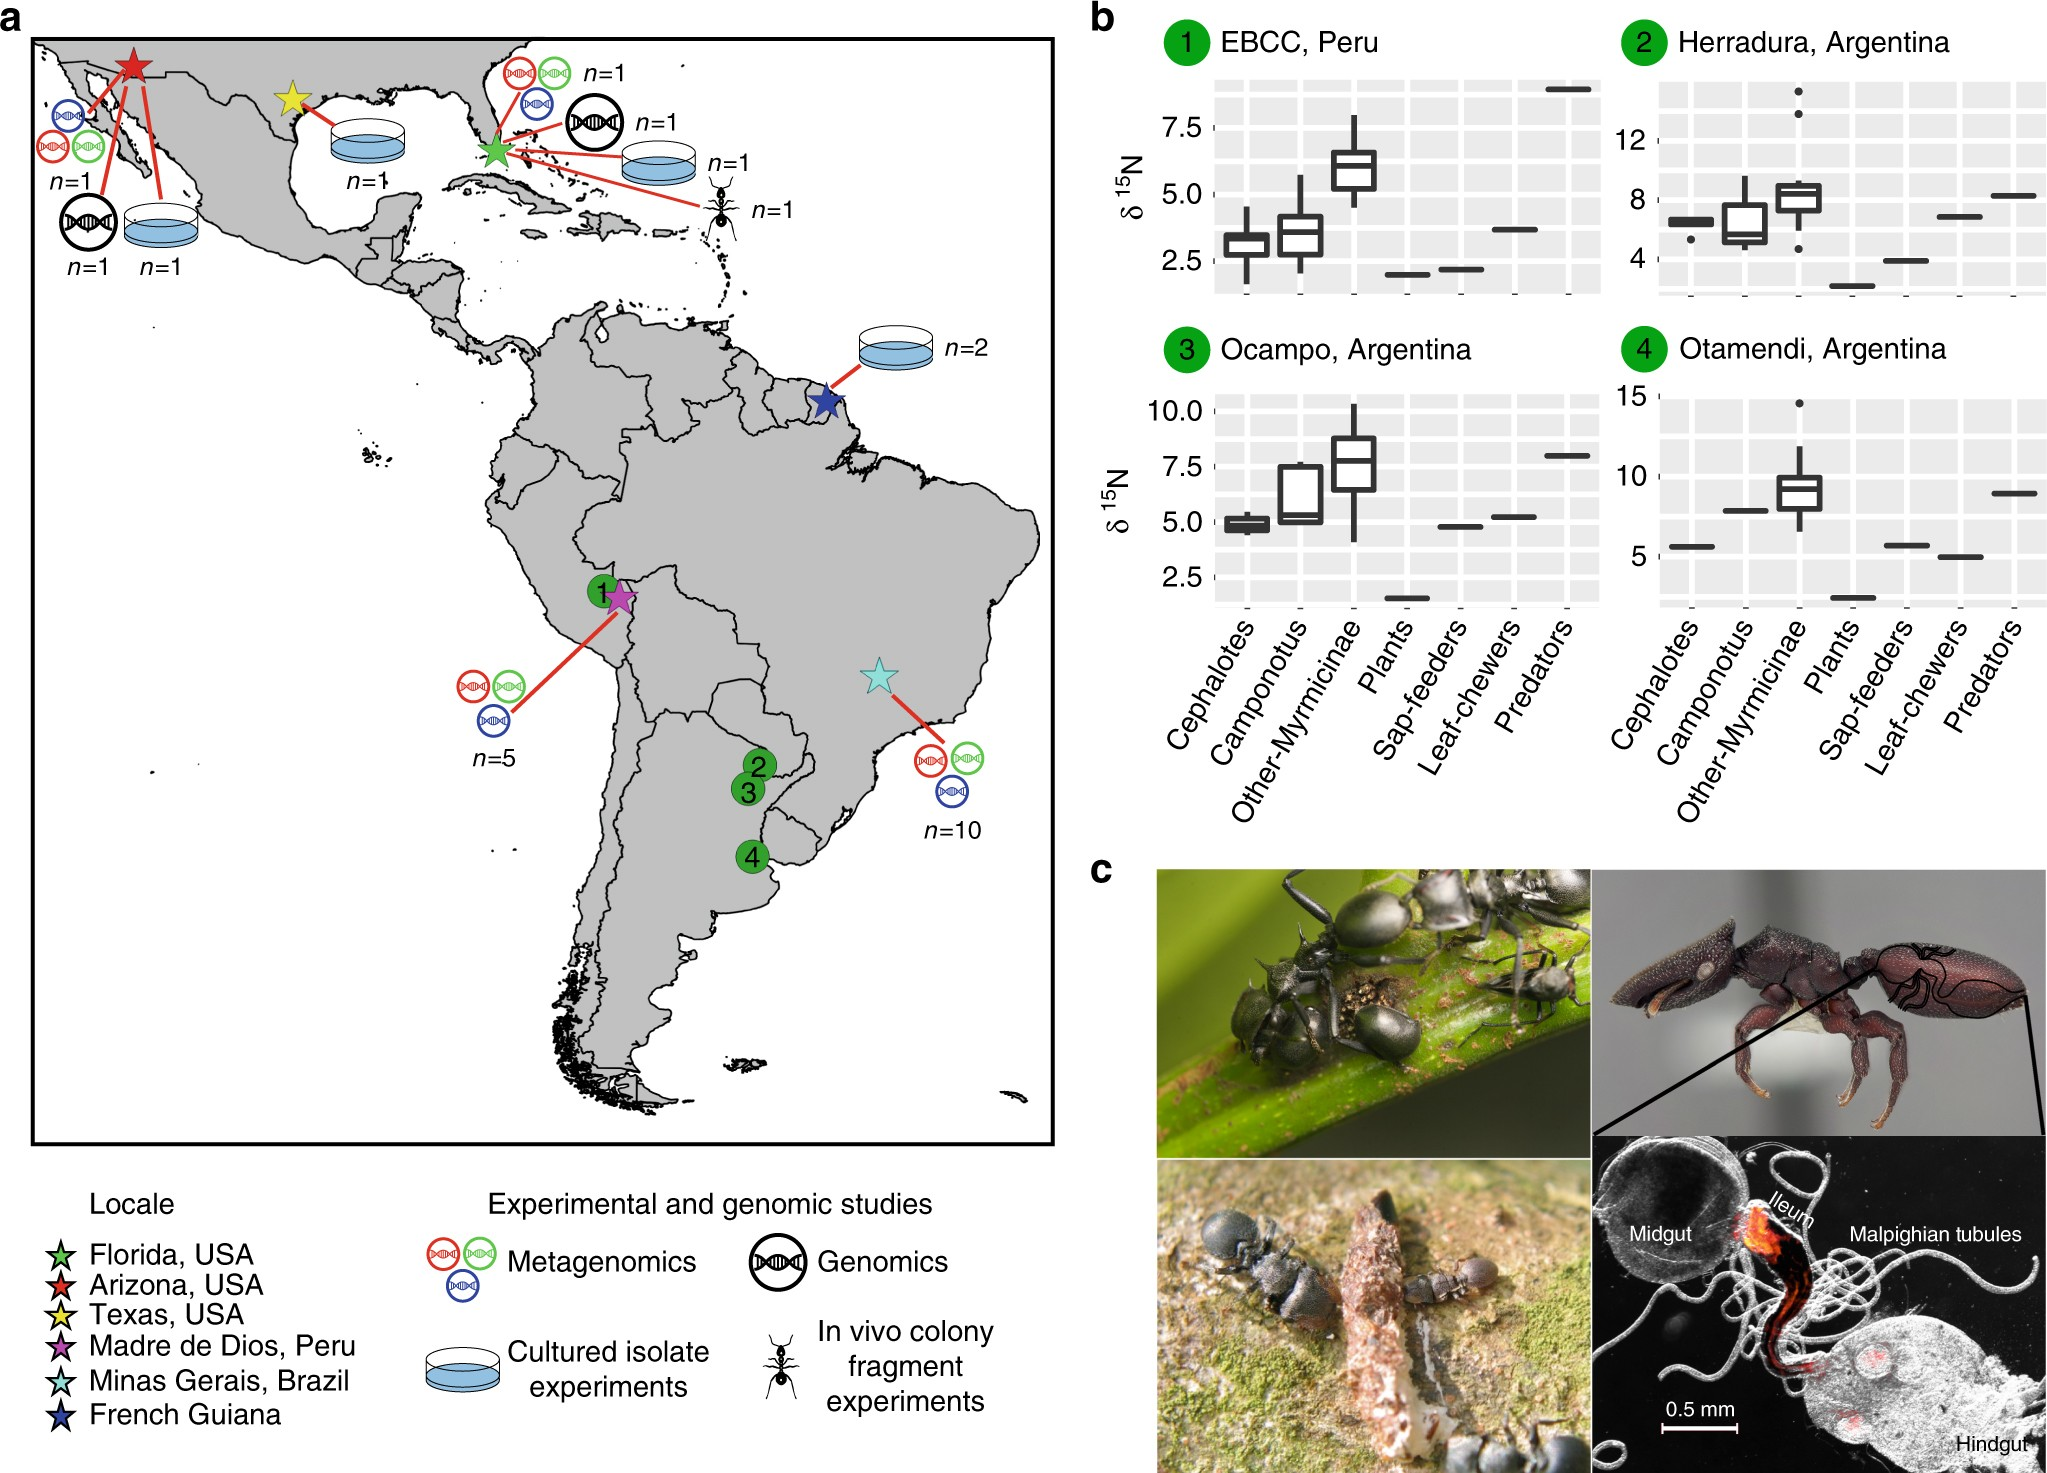 Herbivorous Turtle Ants Obtain Essential Nutrients From A Conserved